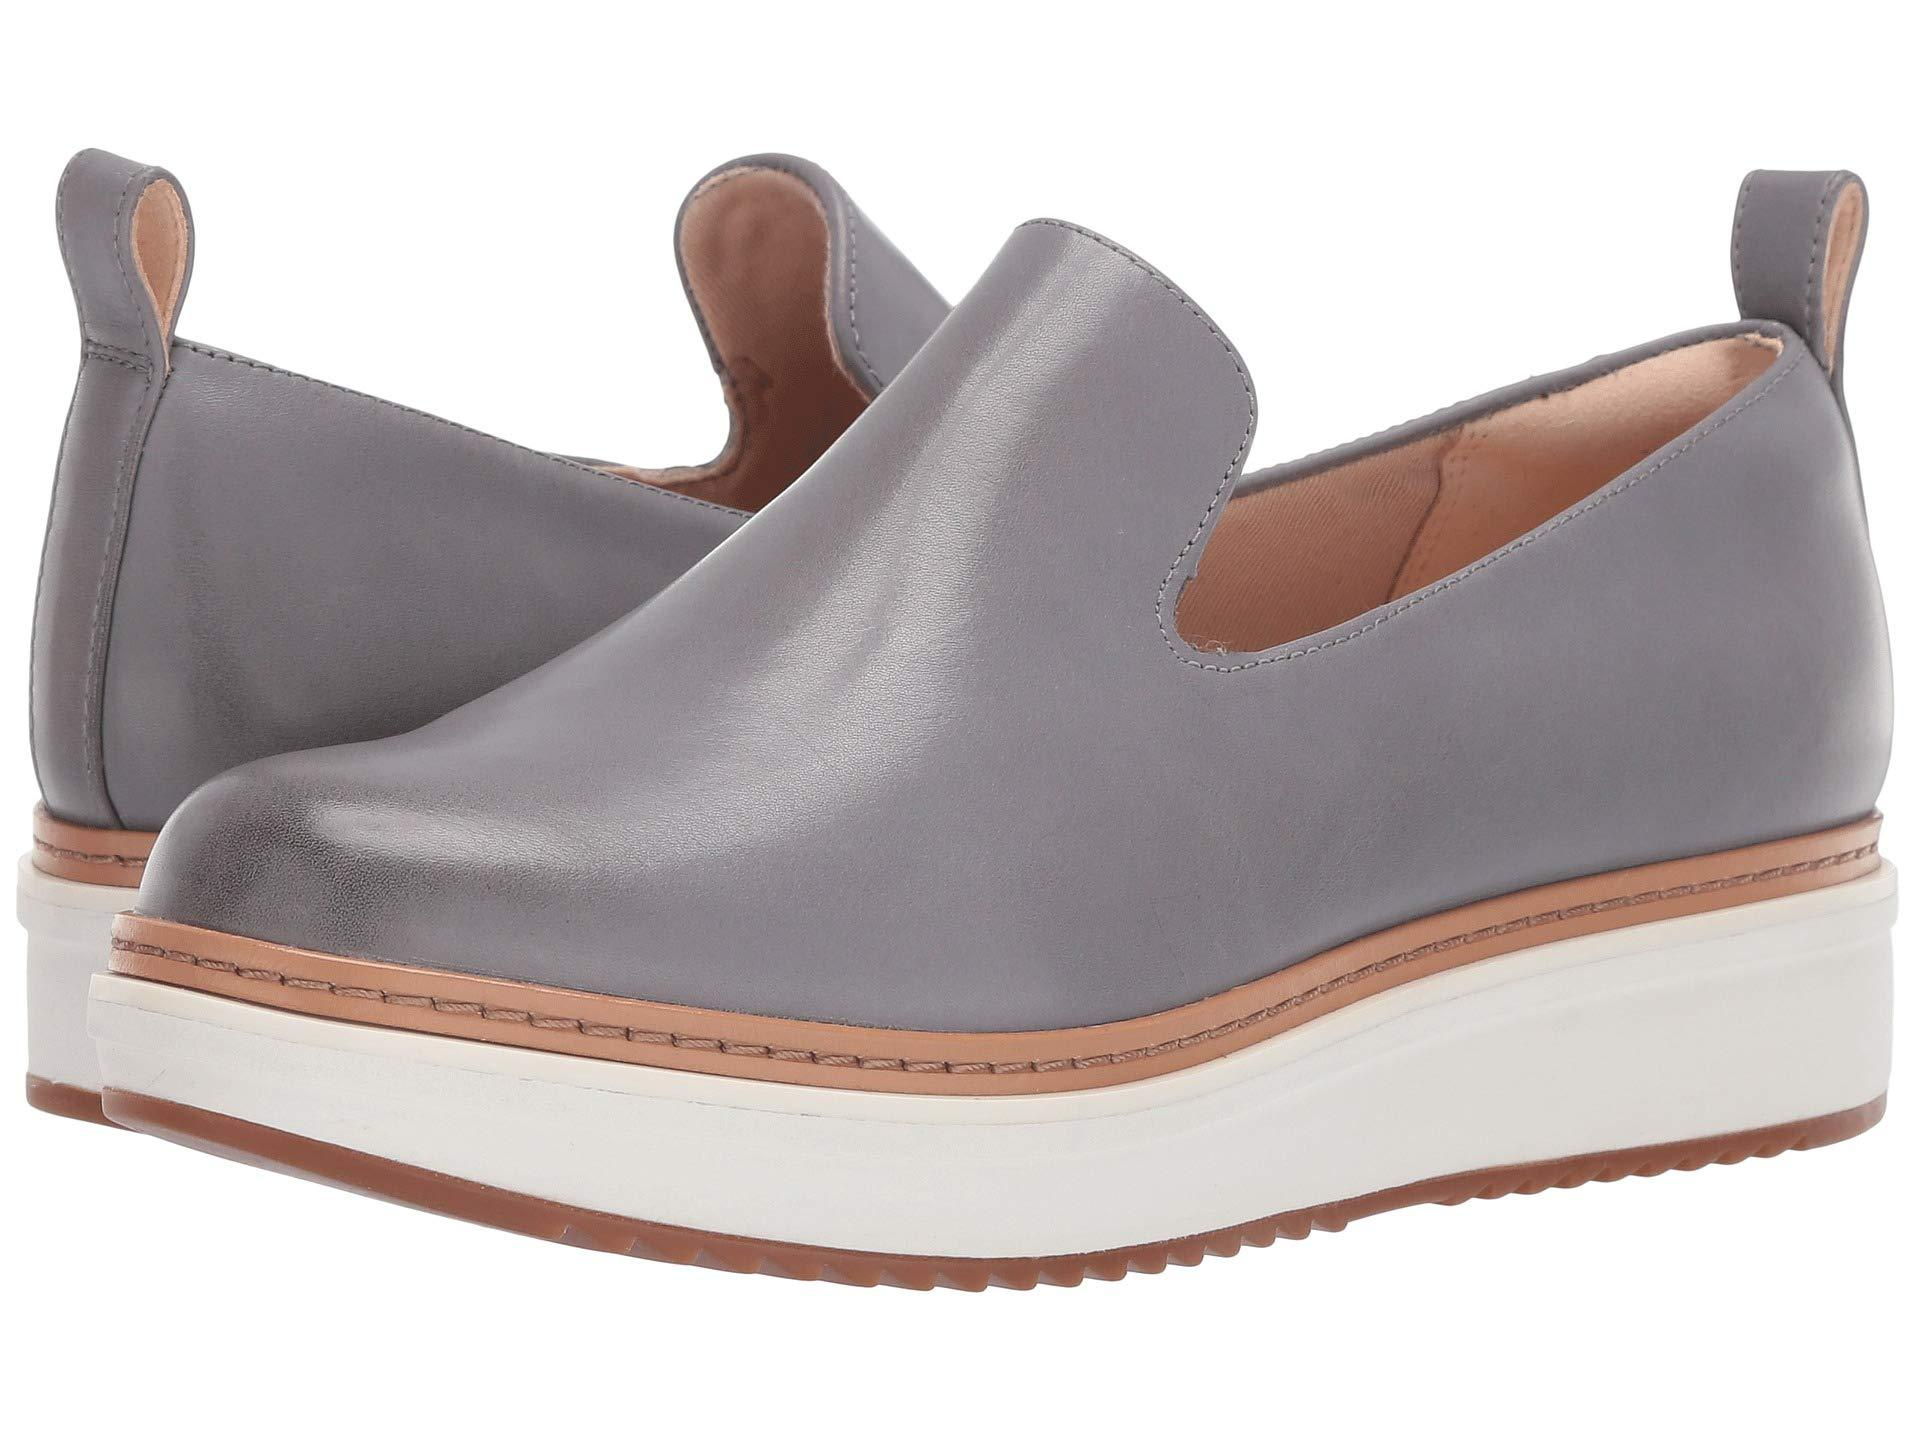 a6e4093db1f Lyst - Clarks Teadale Genna (grey Leather) Women s Slip On Shoes in Gray